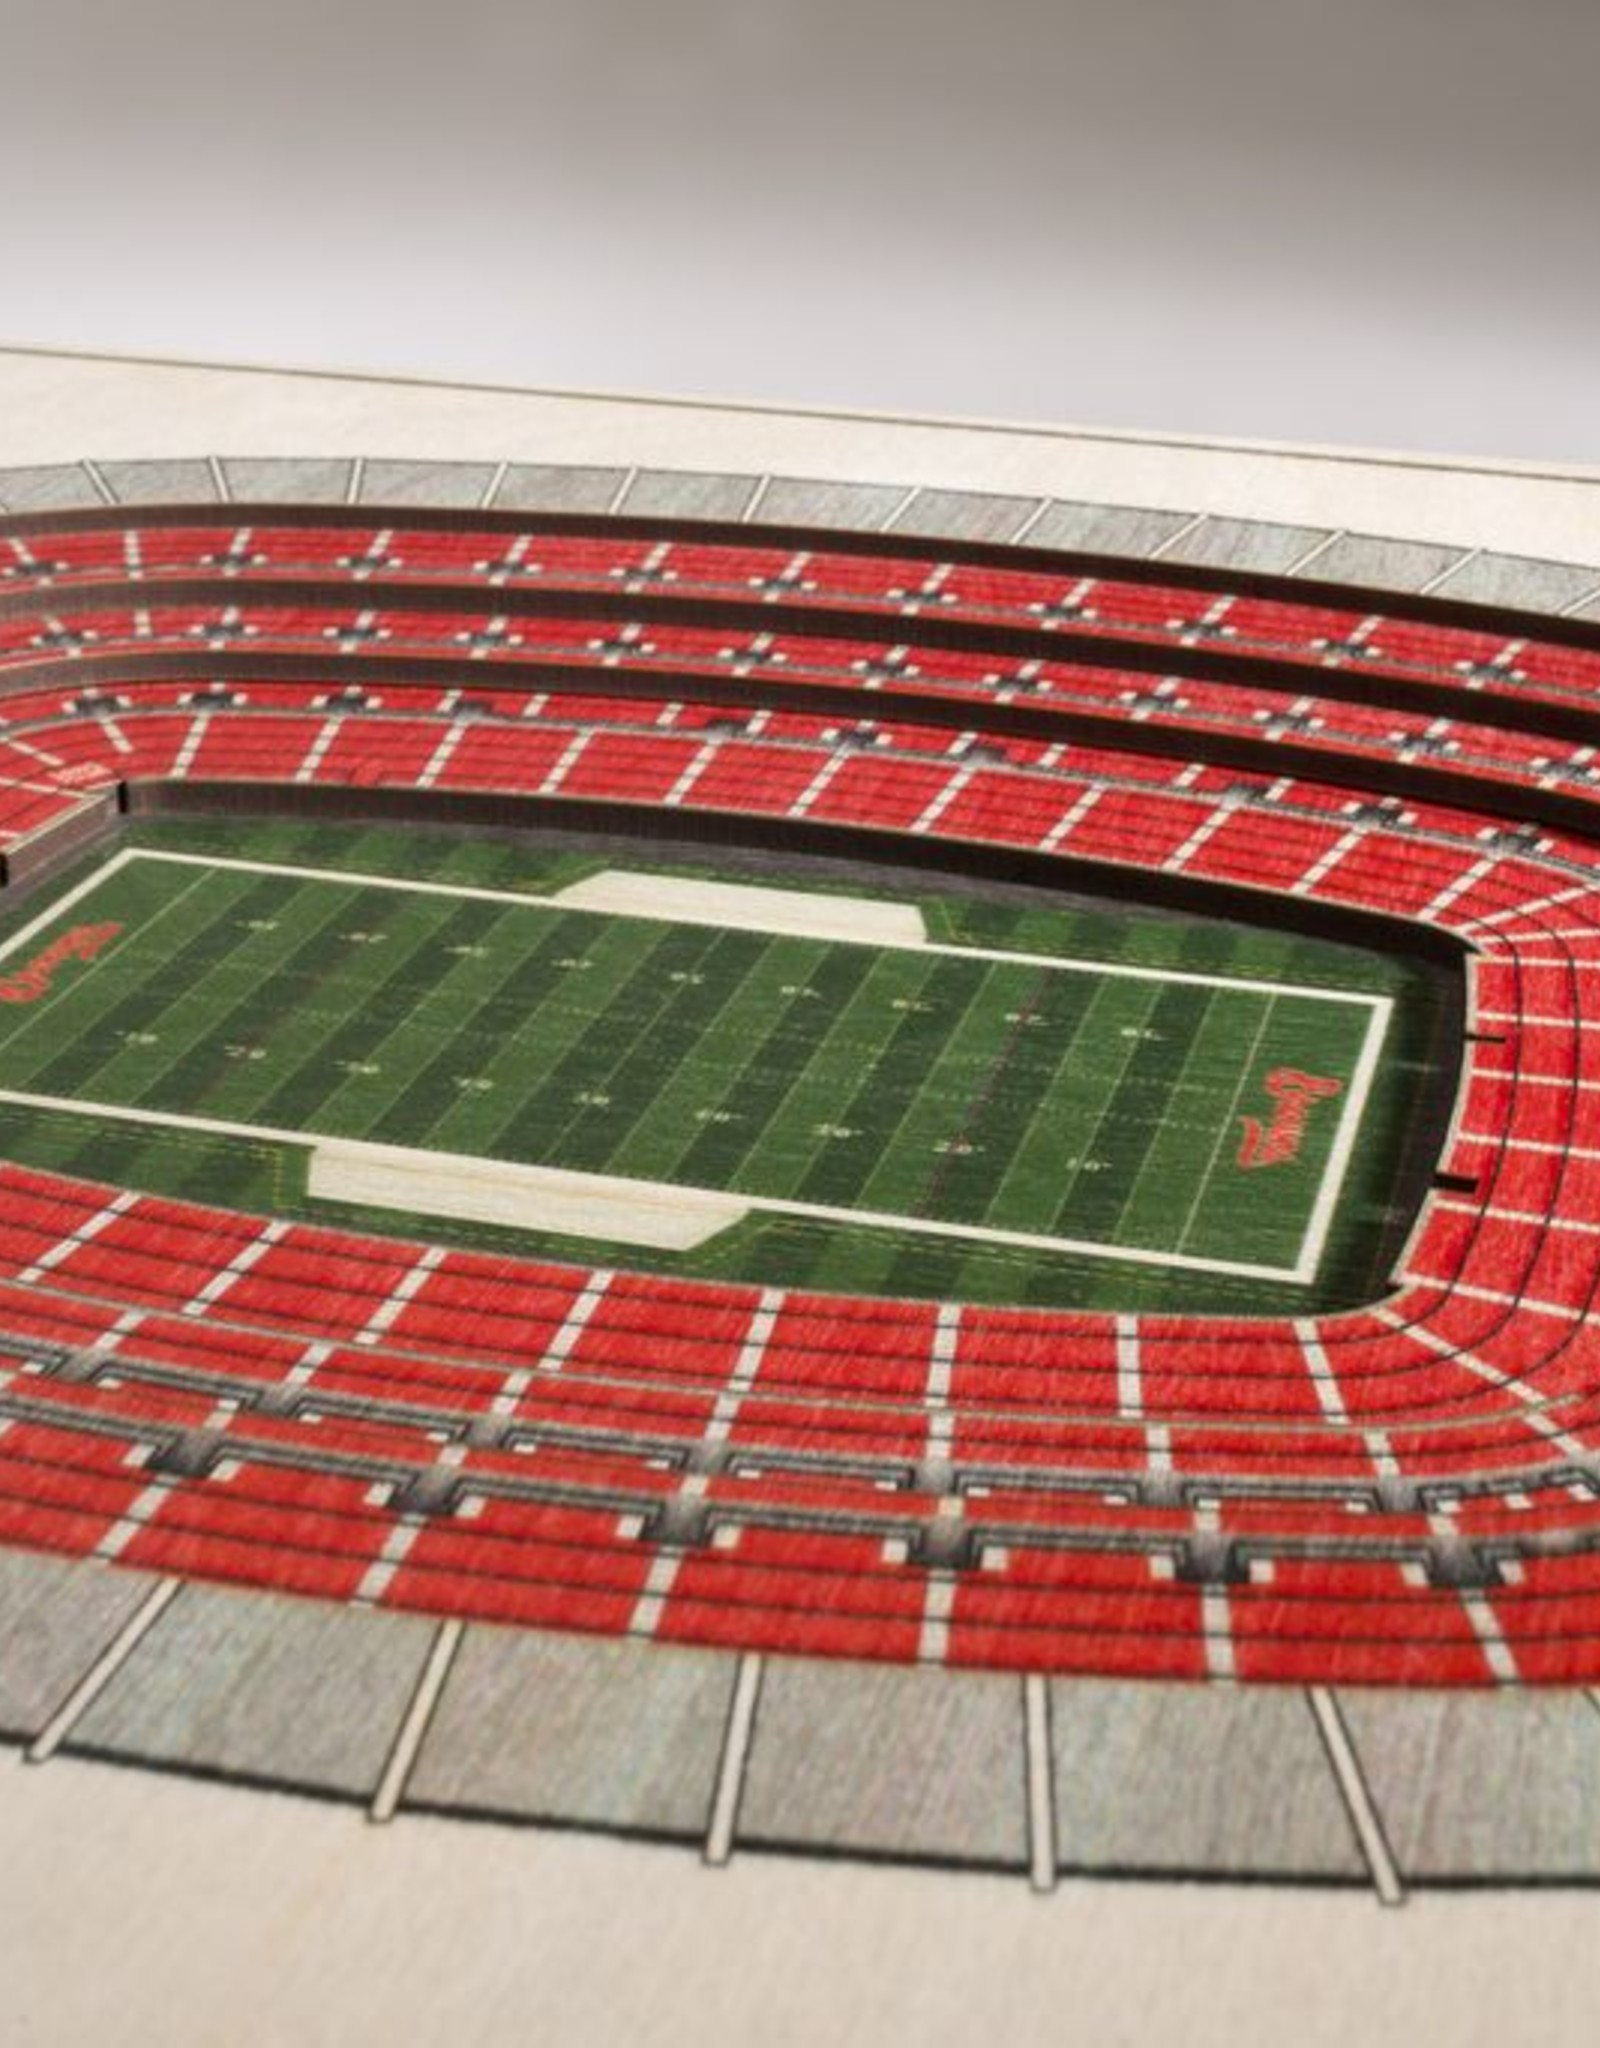 YOU THE FAN Cleveland Browns 5-Layer 3D Stadium Wall Art